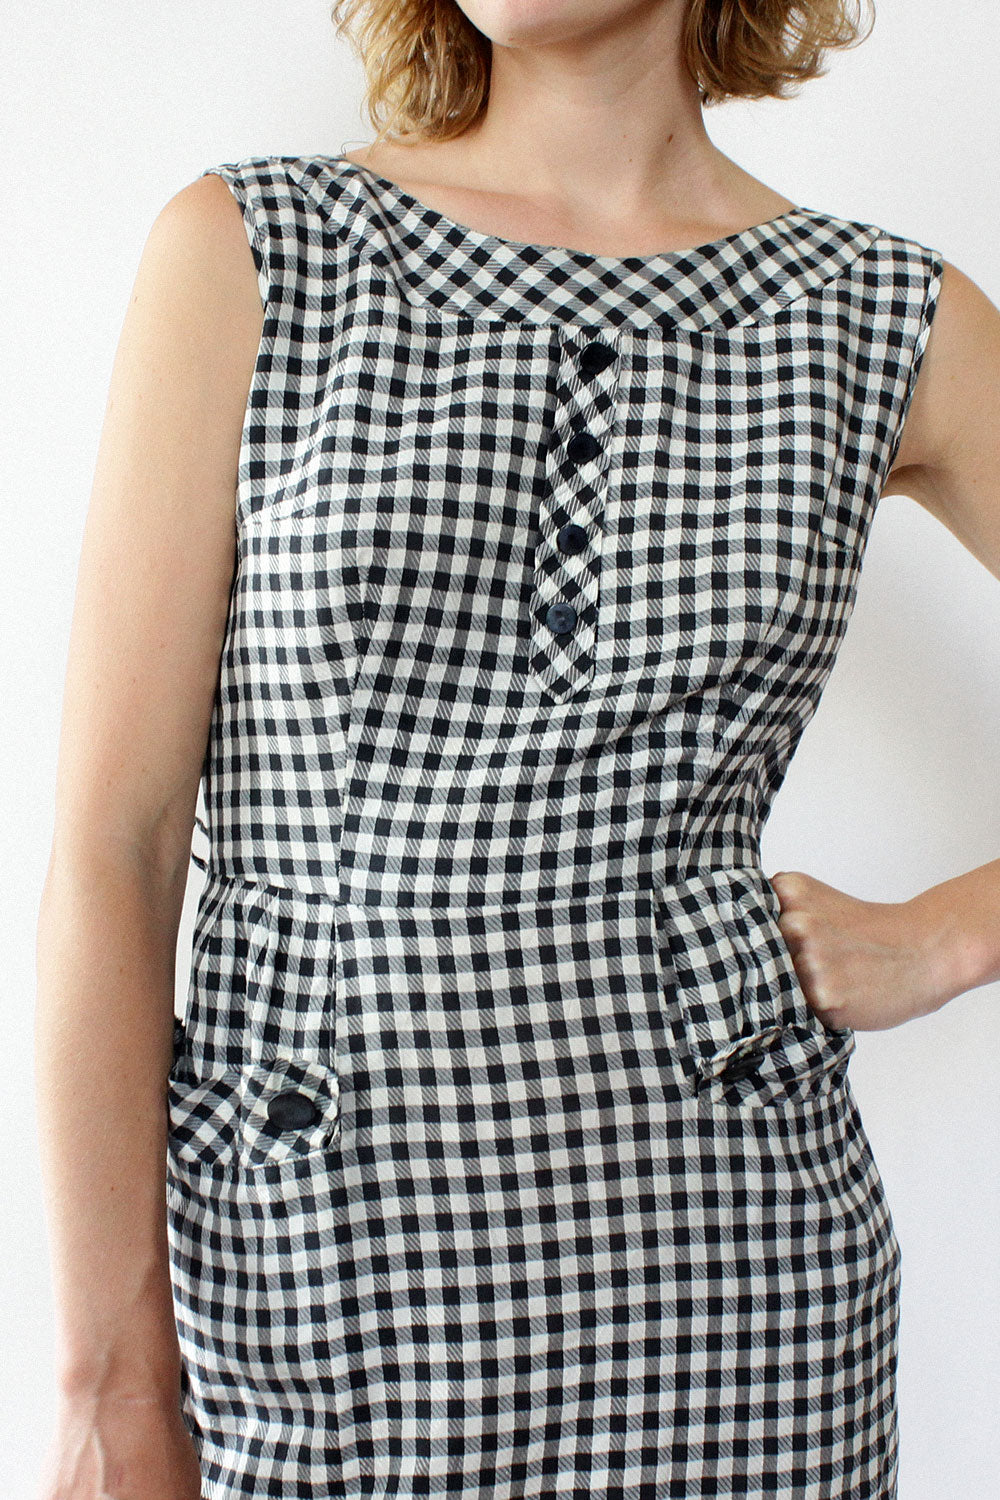 Greta Gingham Dress M